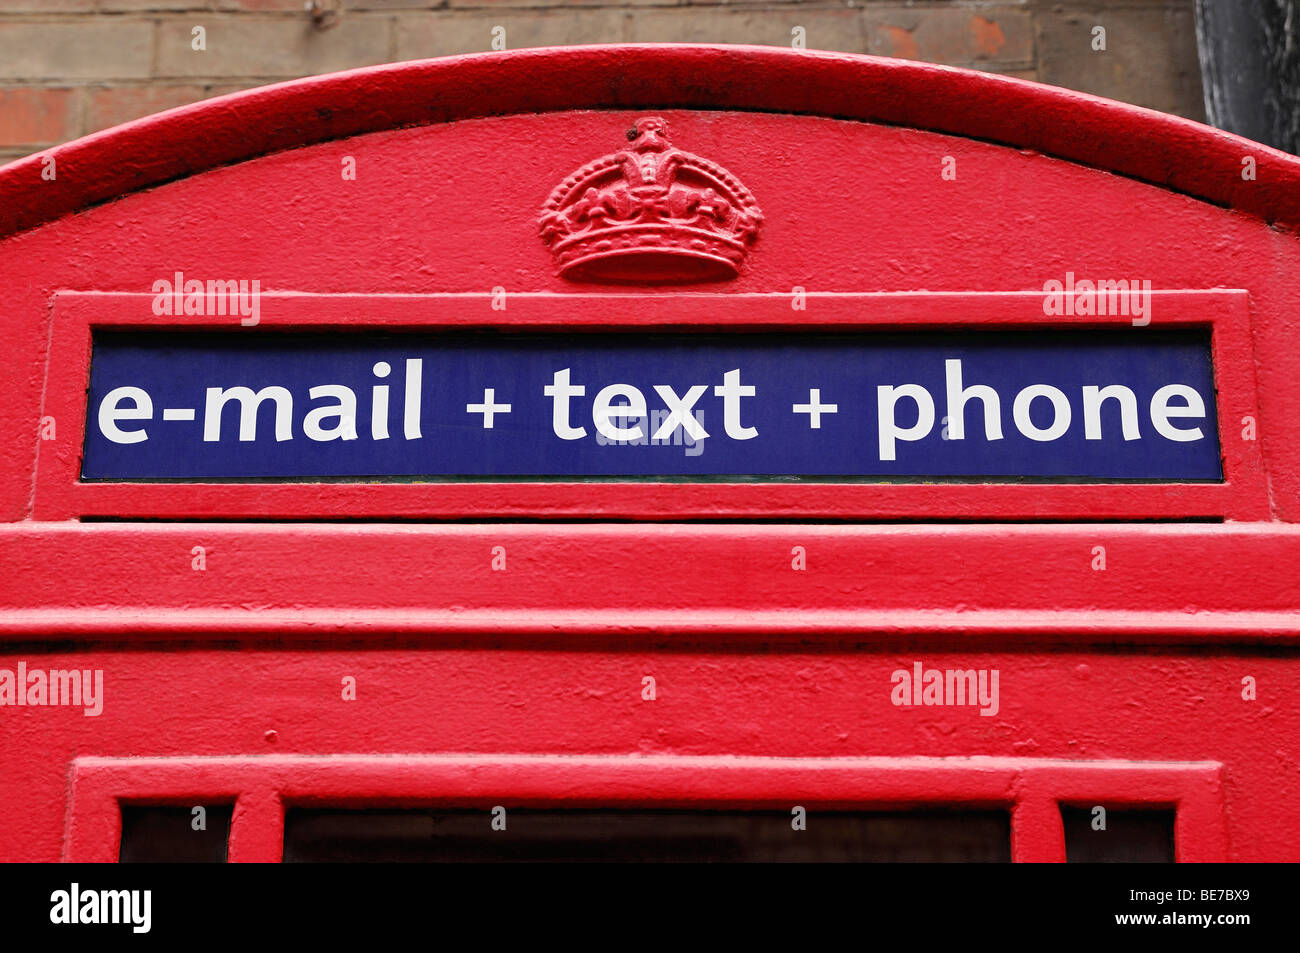 Traditional Red Telephone Box Offering Email, Text and Phone Services. Close Up, United Kingdom. Stock Photo